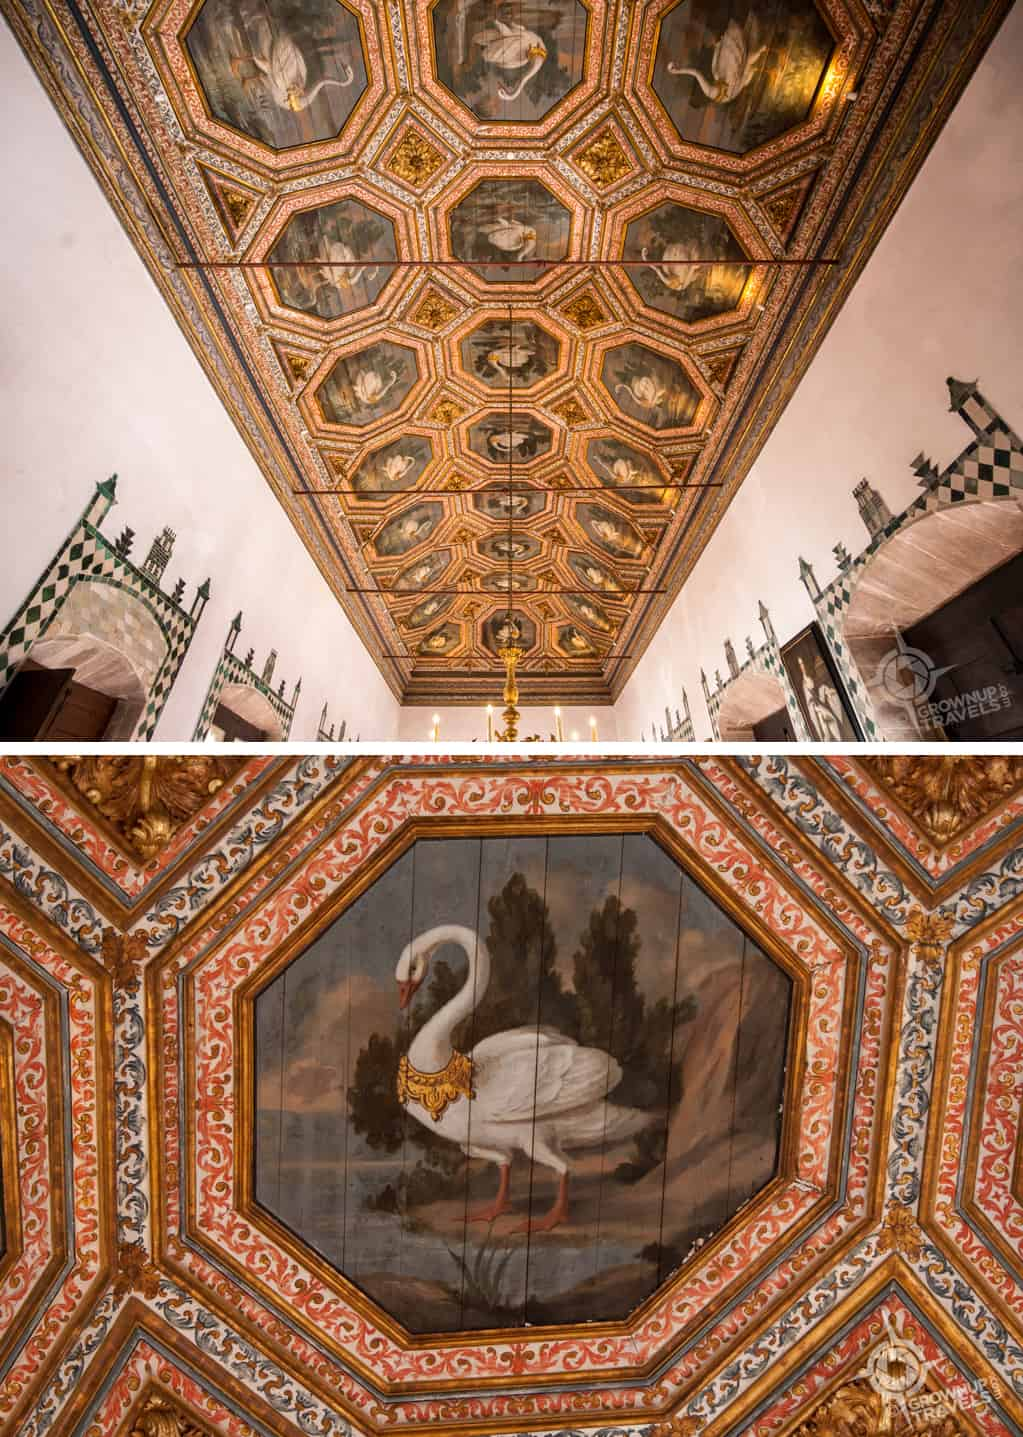 National Palace Swan ceiling and detail